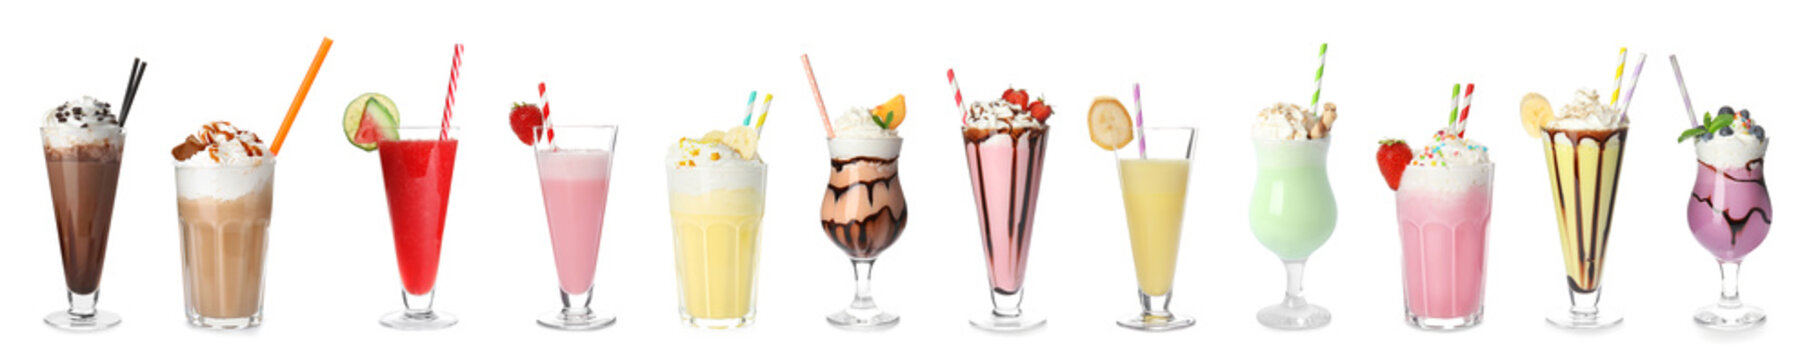 Set of different delicious cocktails on white background